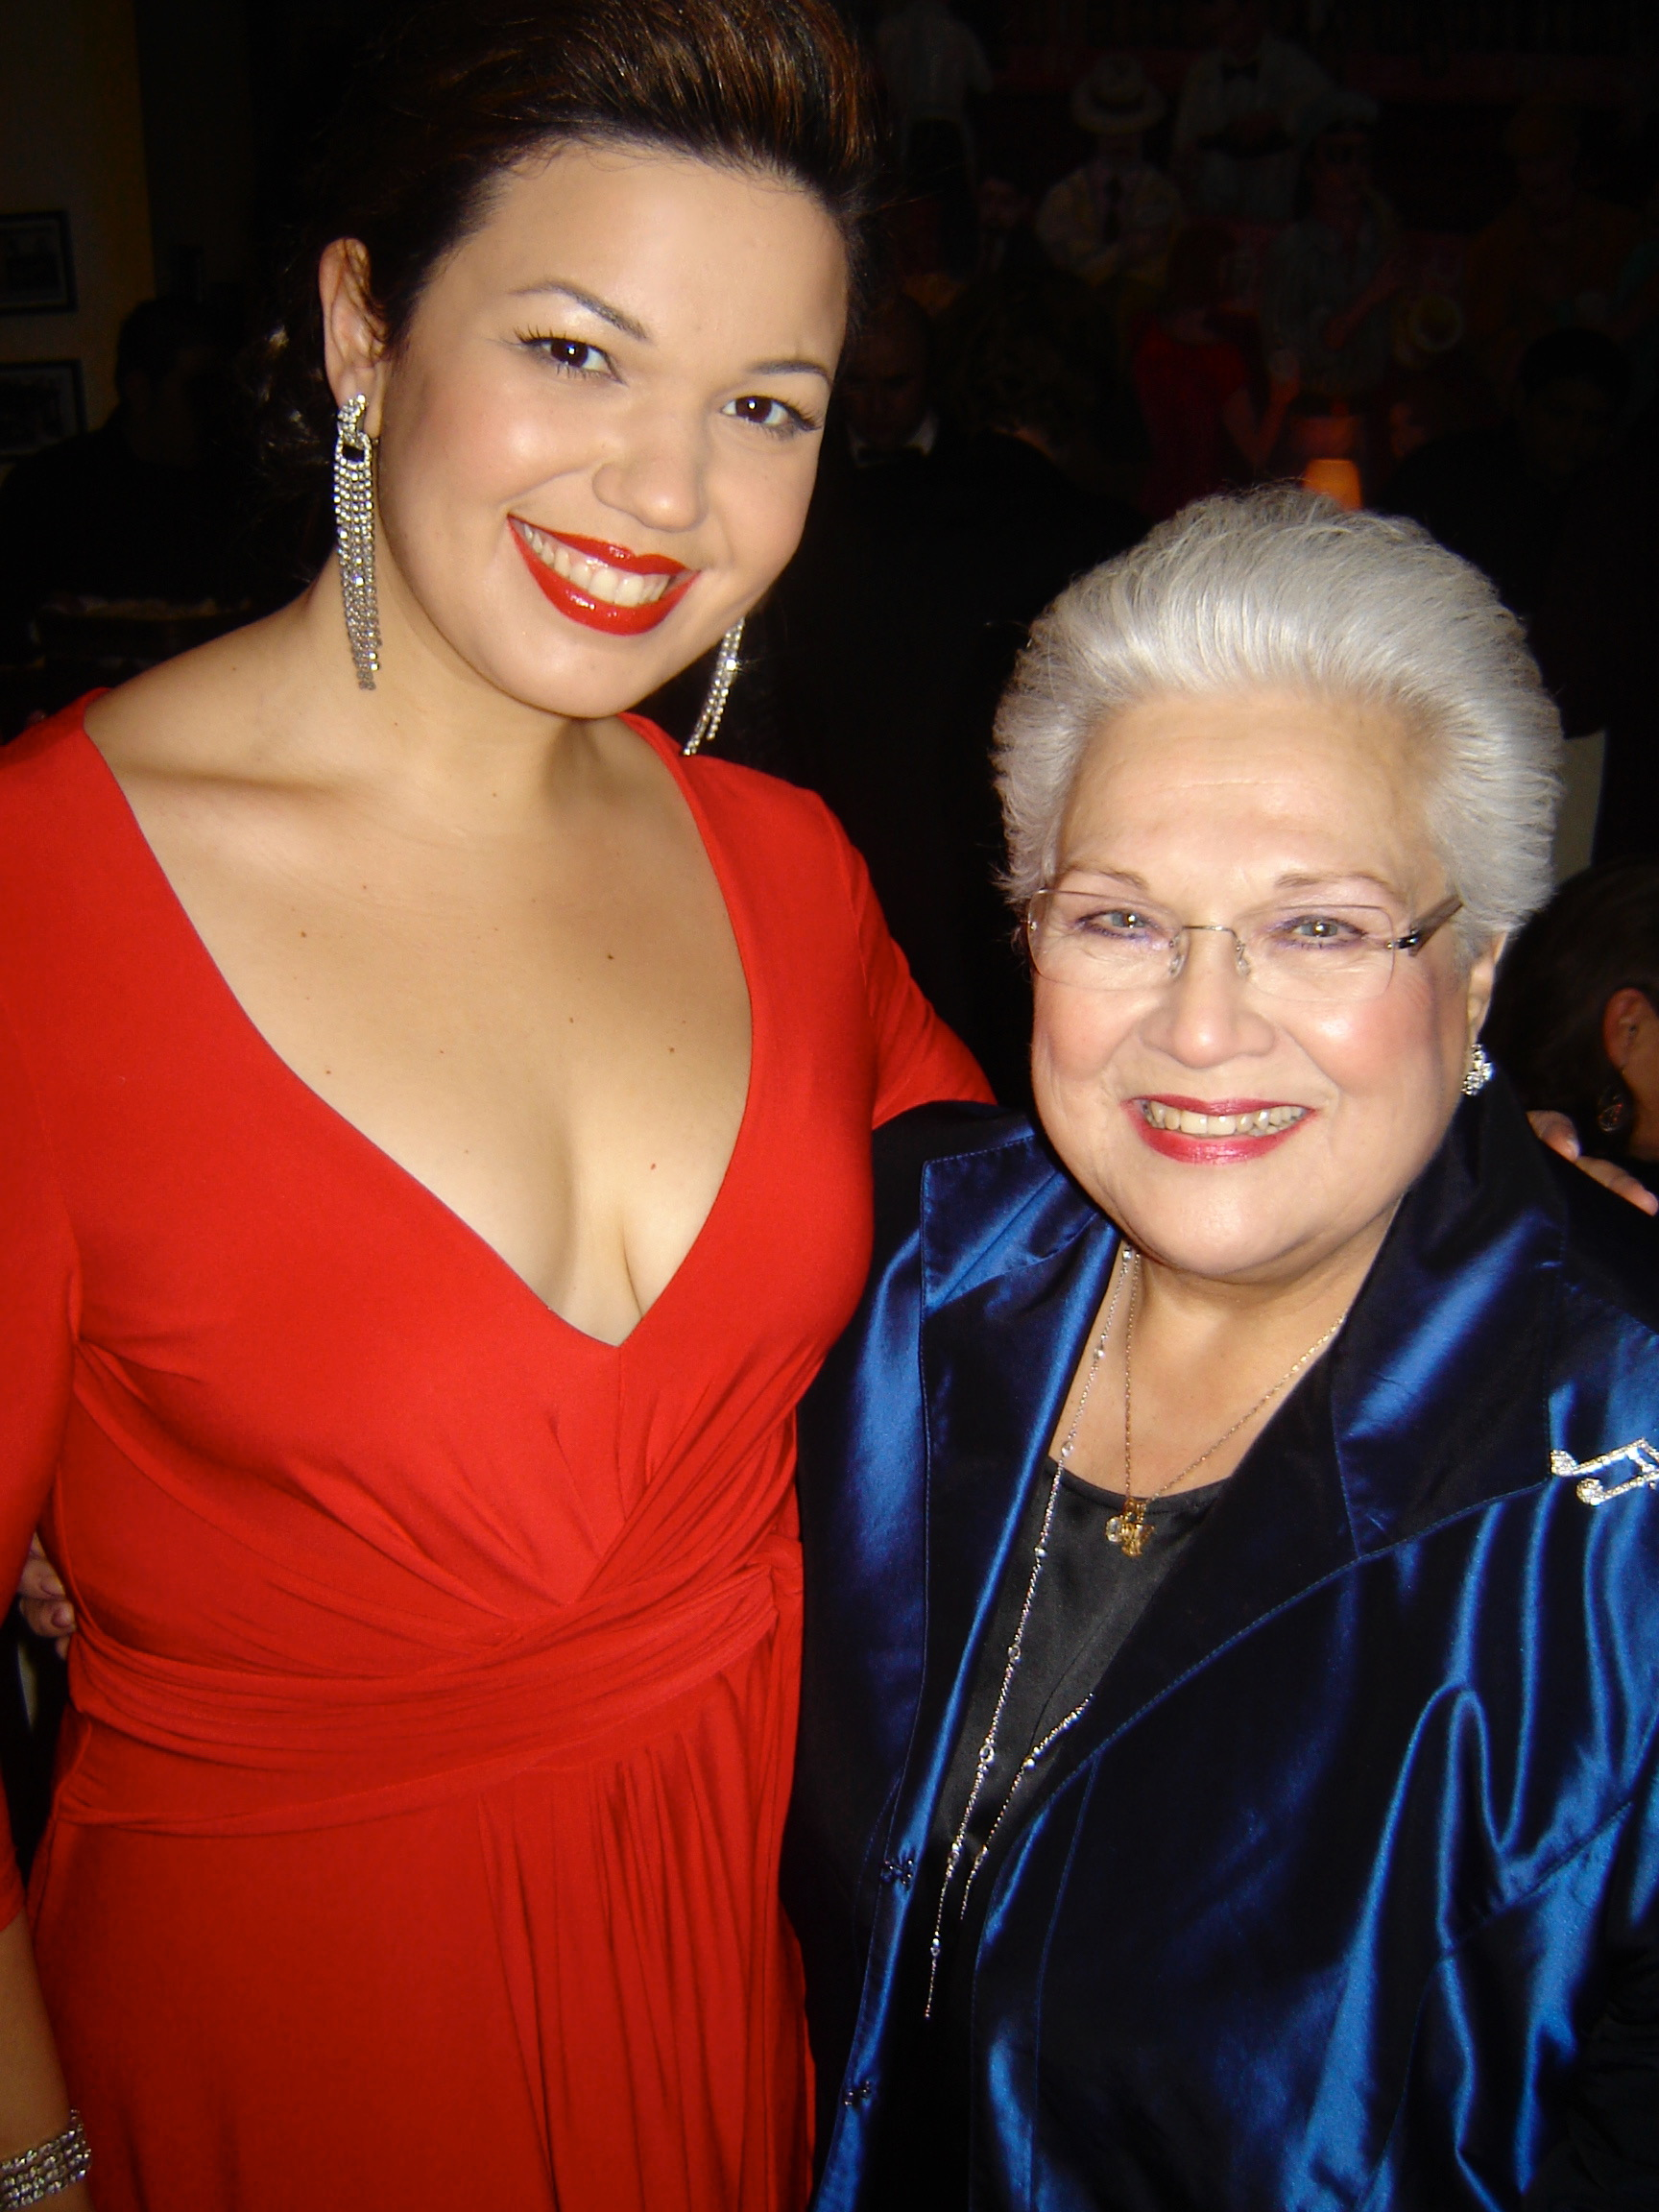 Celebrating with Marilyn Horne, post Carnegie Hall MHF Gala!